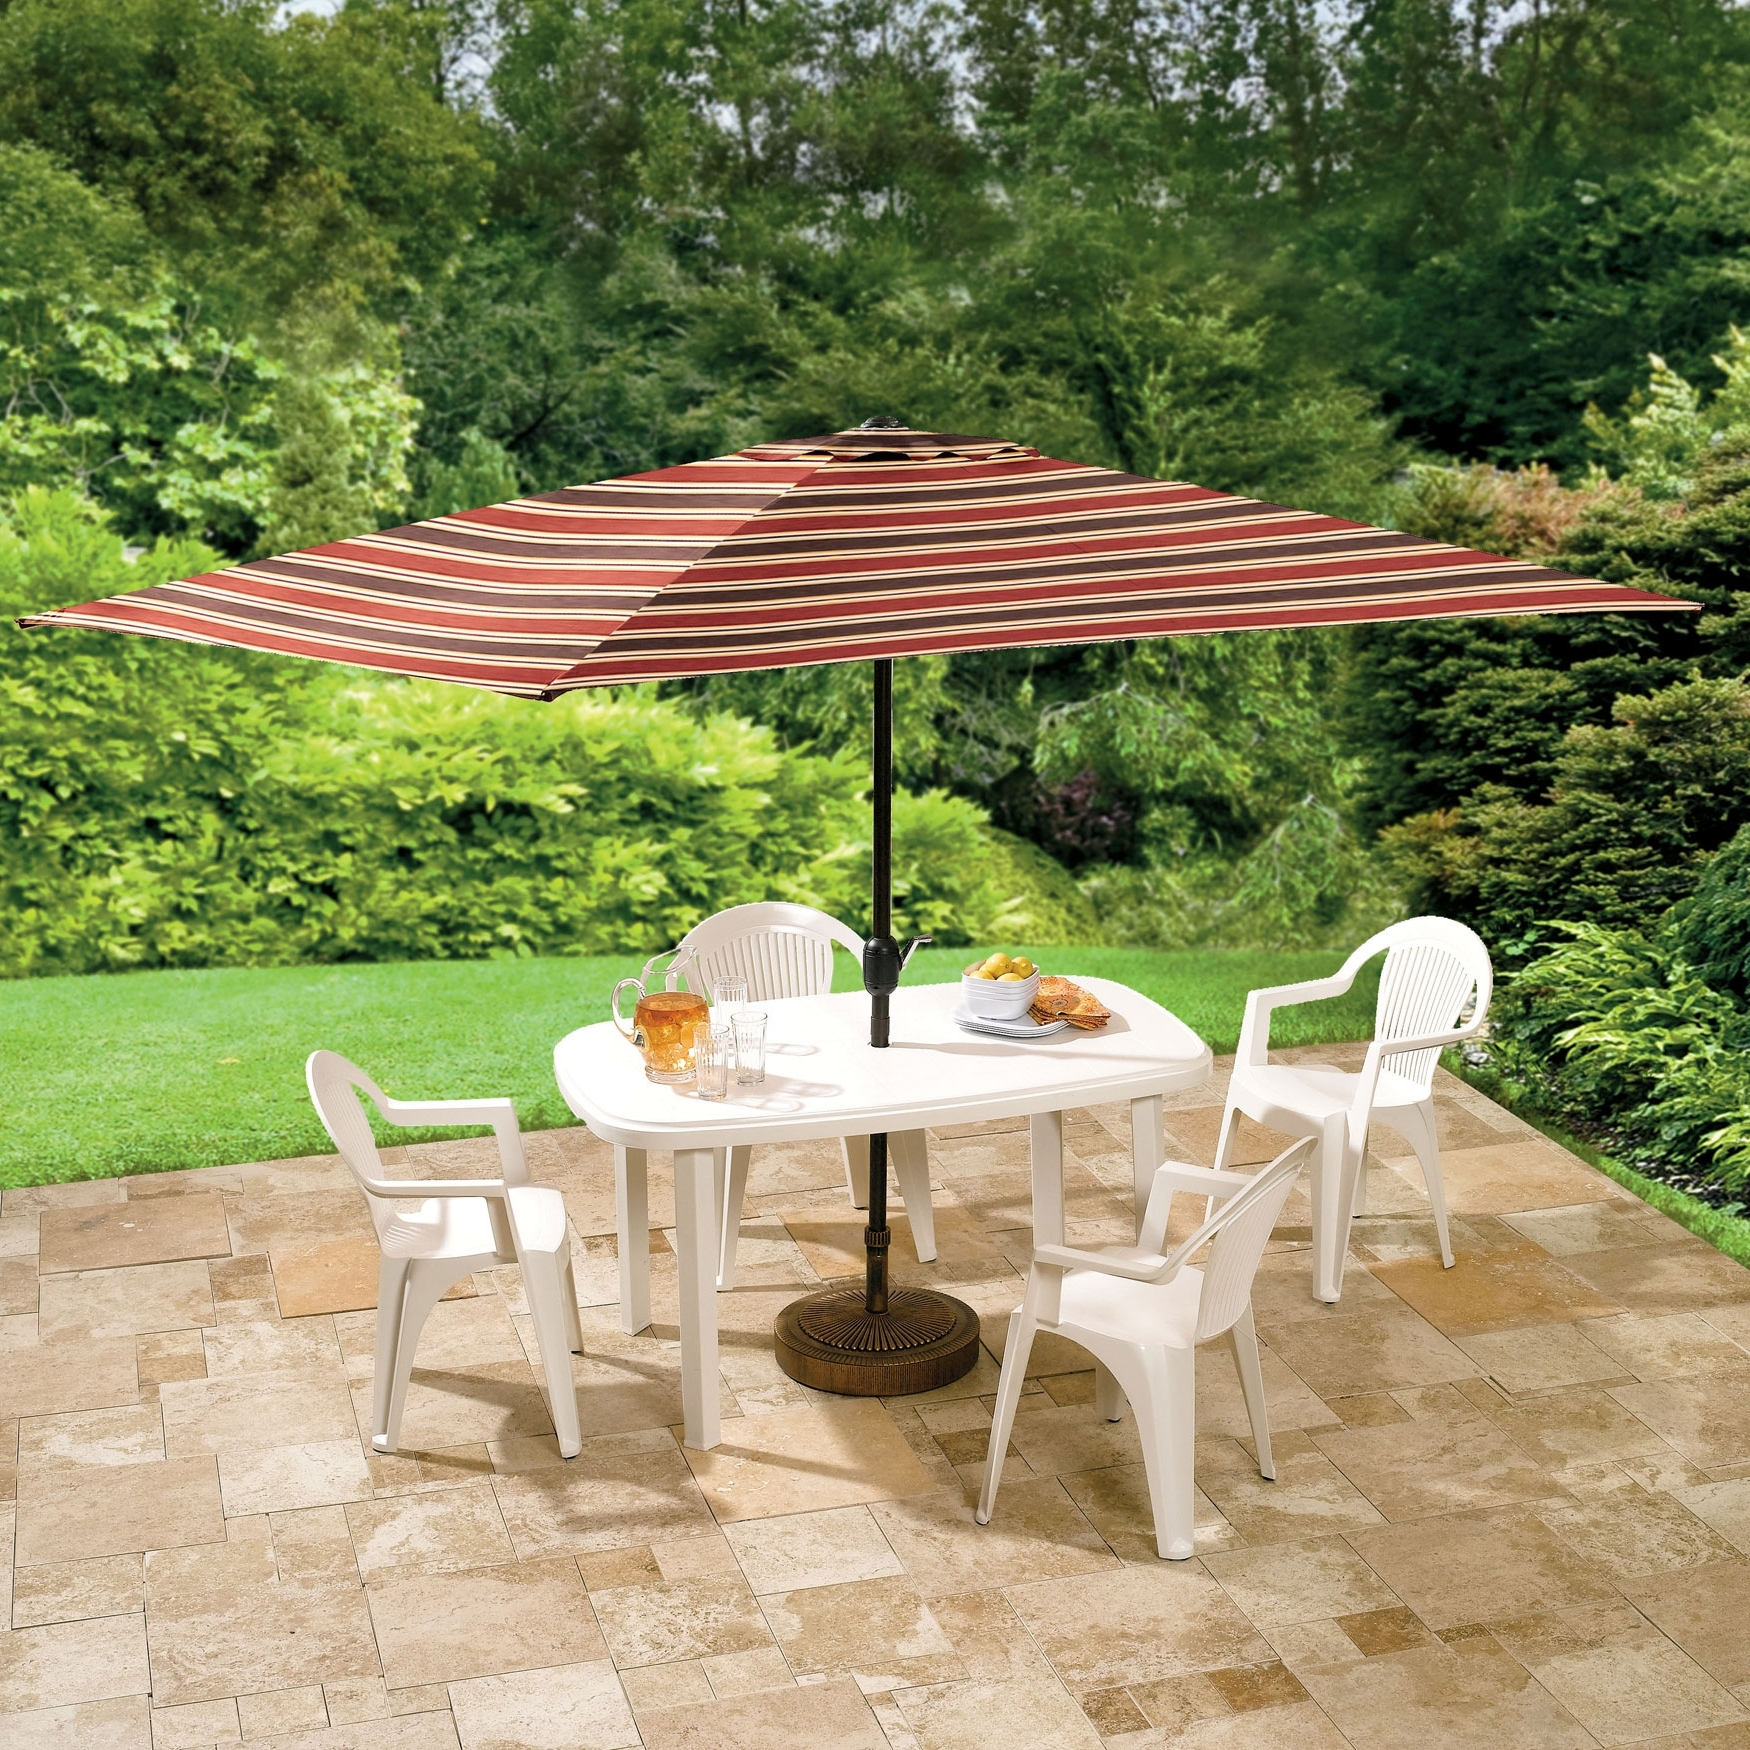 Invisibleinkradio Home Decor Within Rectangular Sunbrella Patio Umbrellas (View 11 of 20)